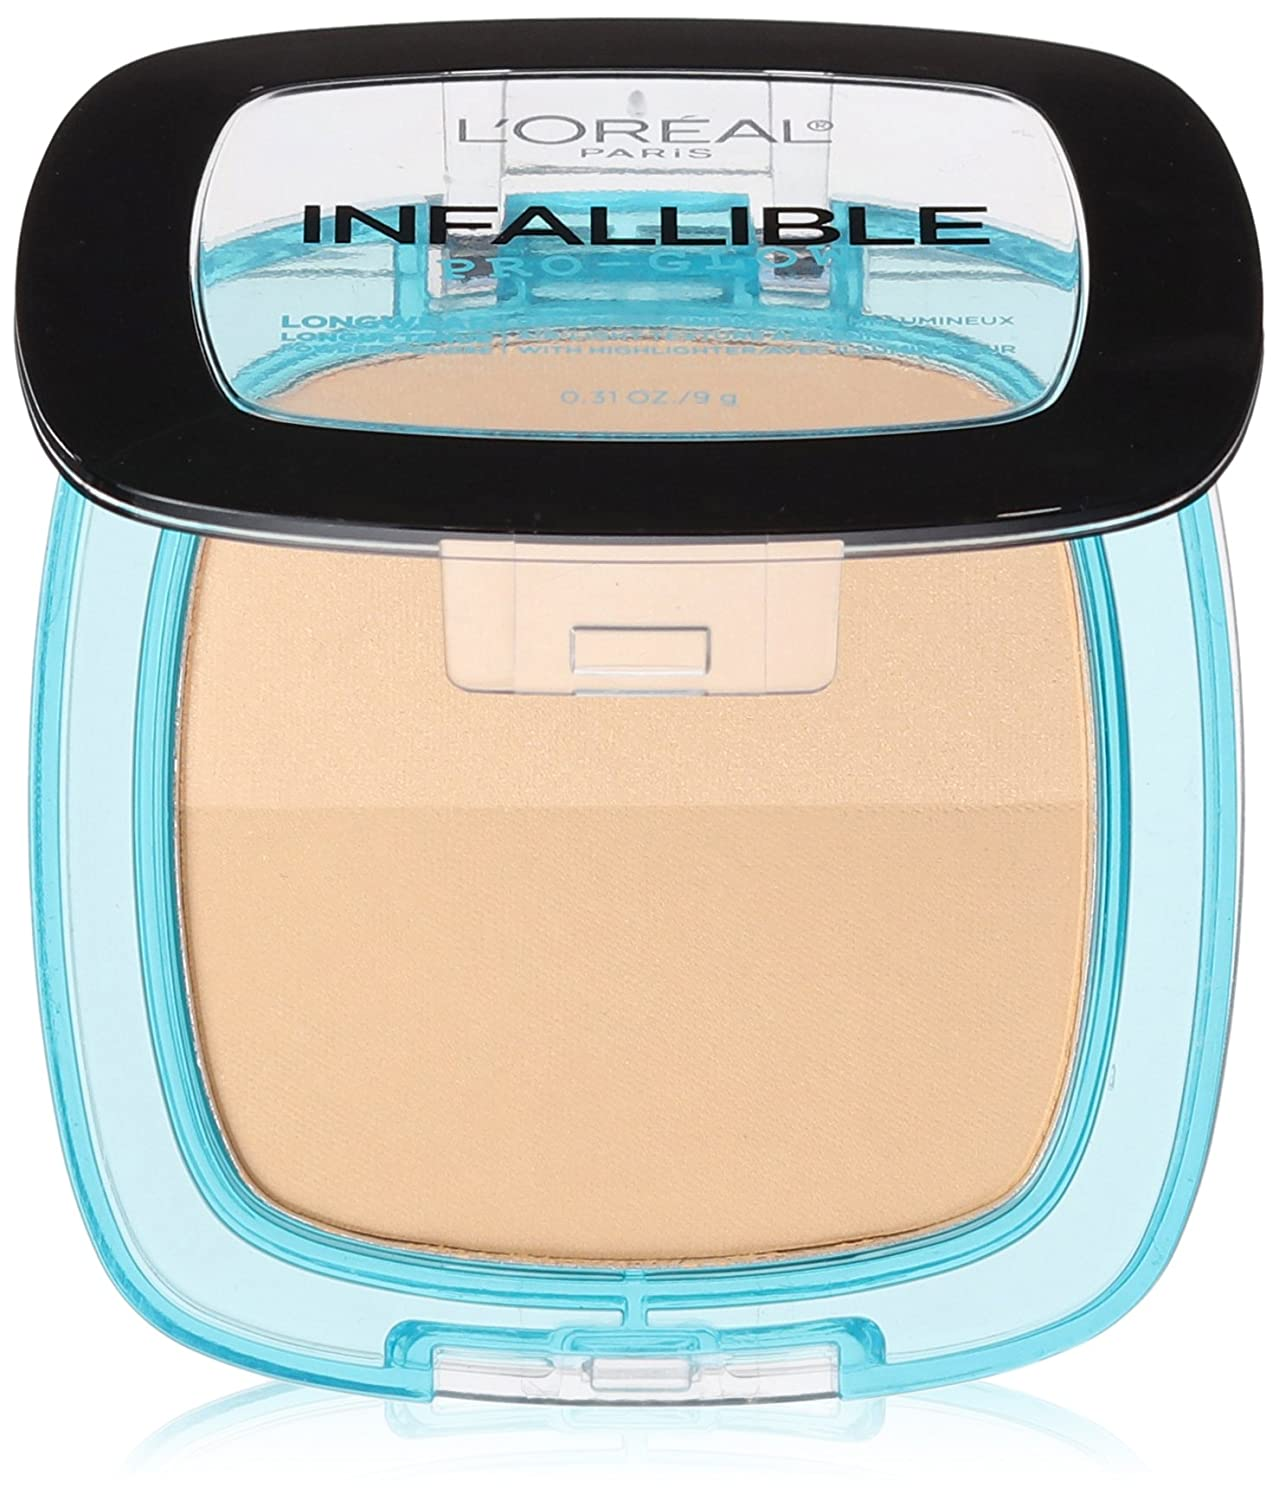 L'Oréal Paris Infallible Pro Glow Pressed Powder, Nude Beige, 0.31 oz.